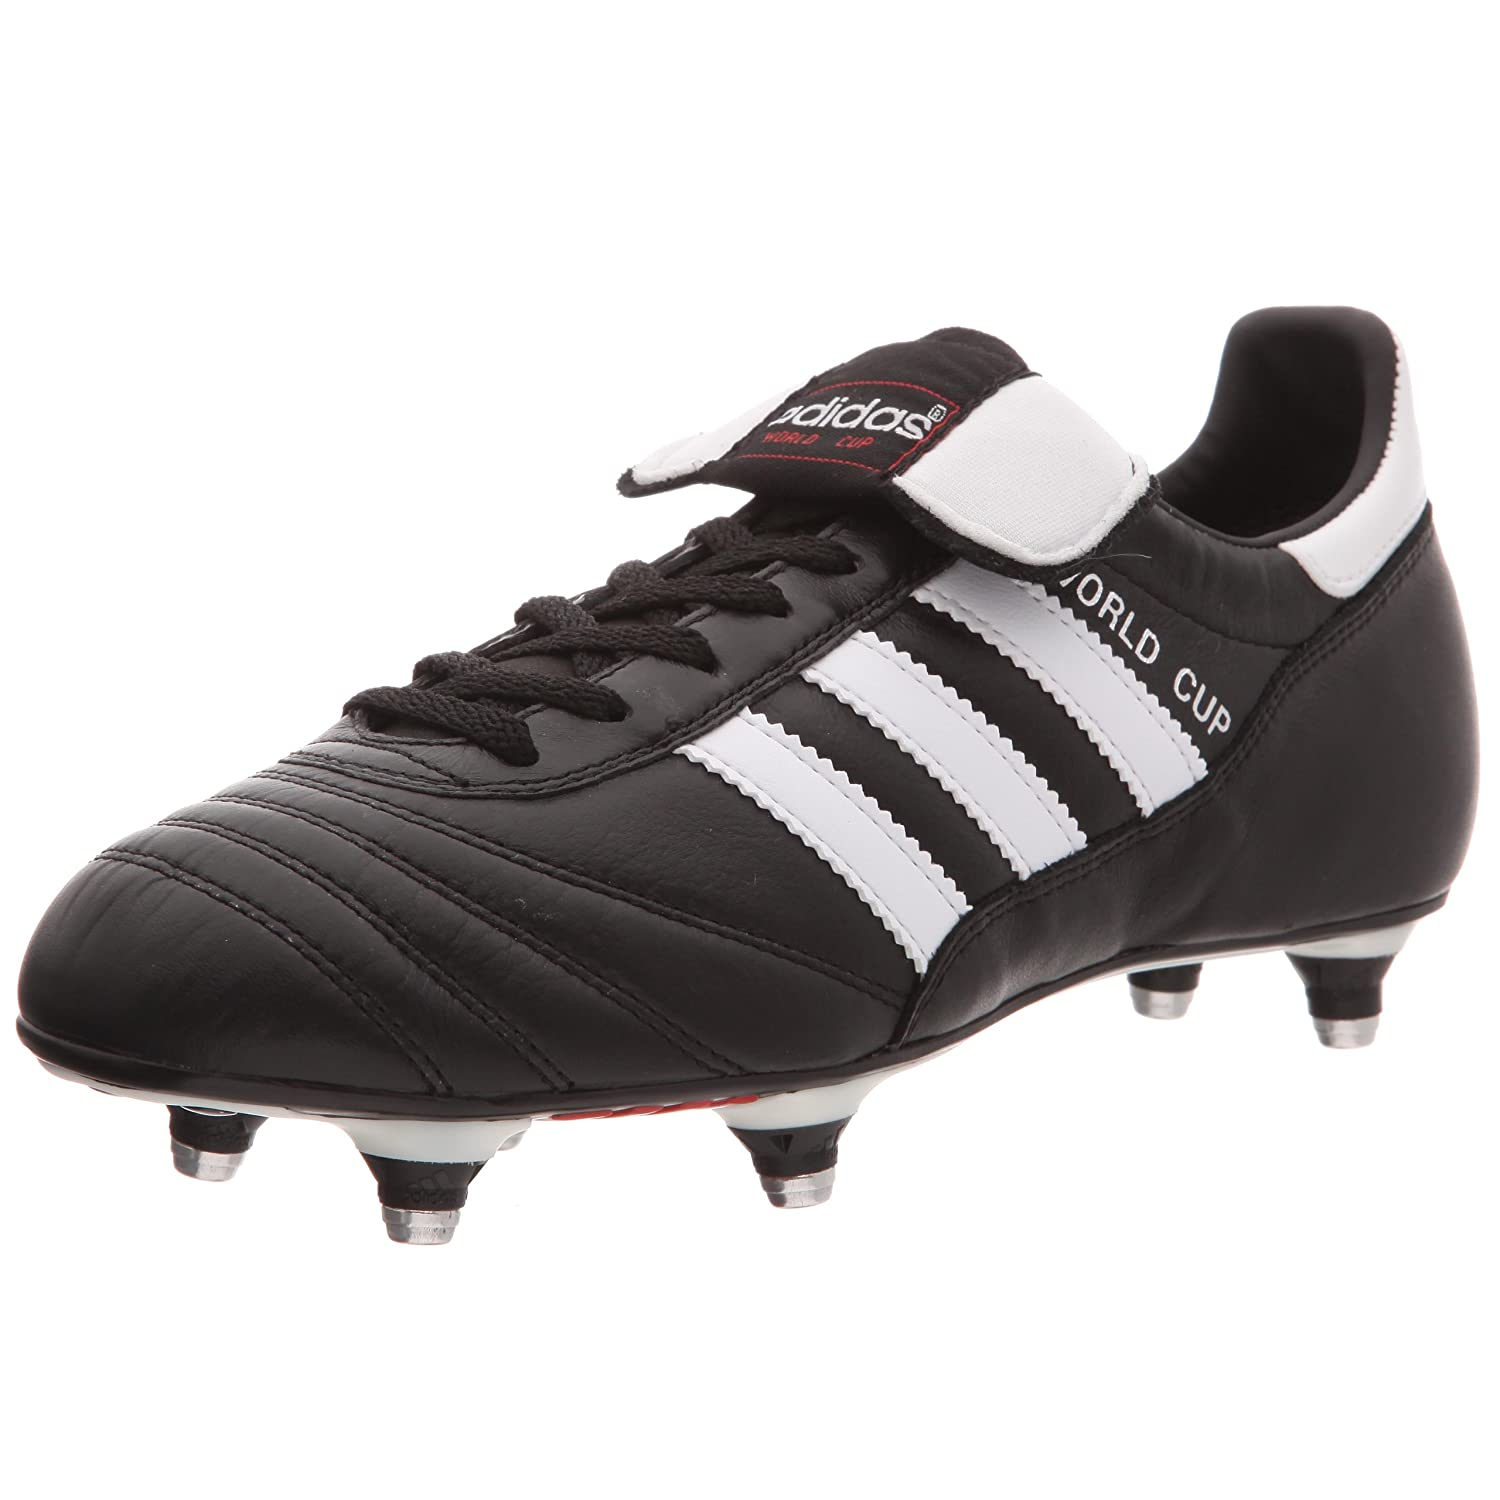 6fb85bc1d2a Amazon.com  adidas Football Shoe World Cup  Shoes